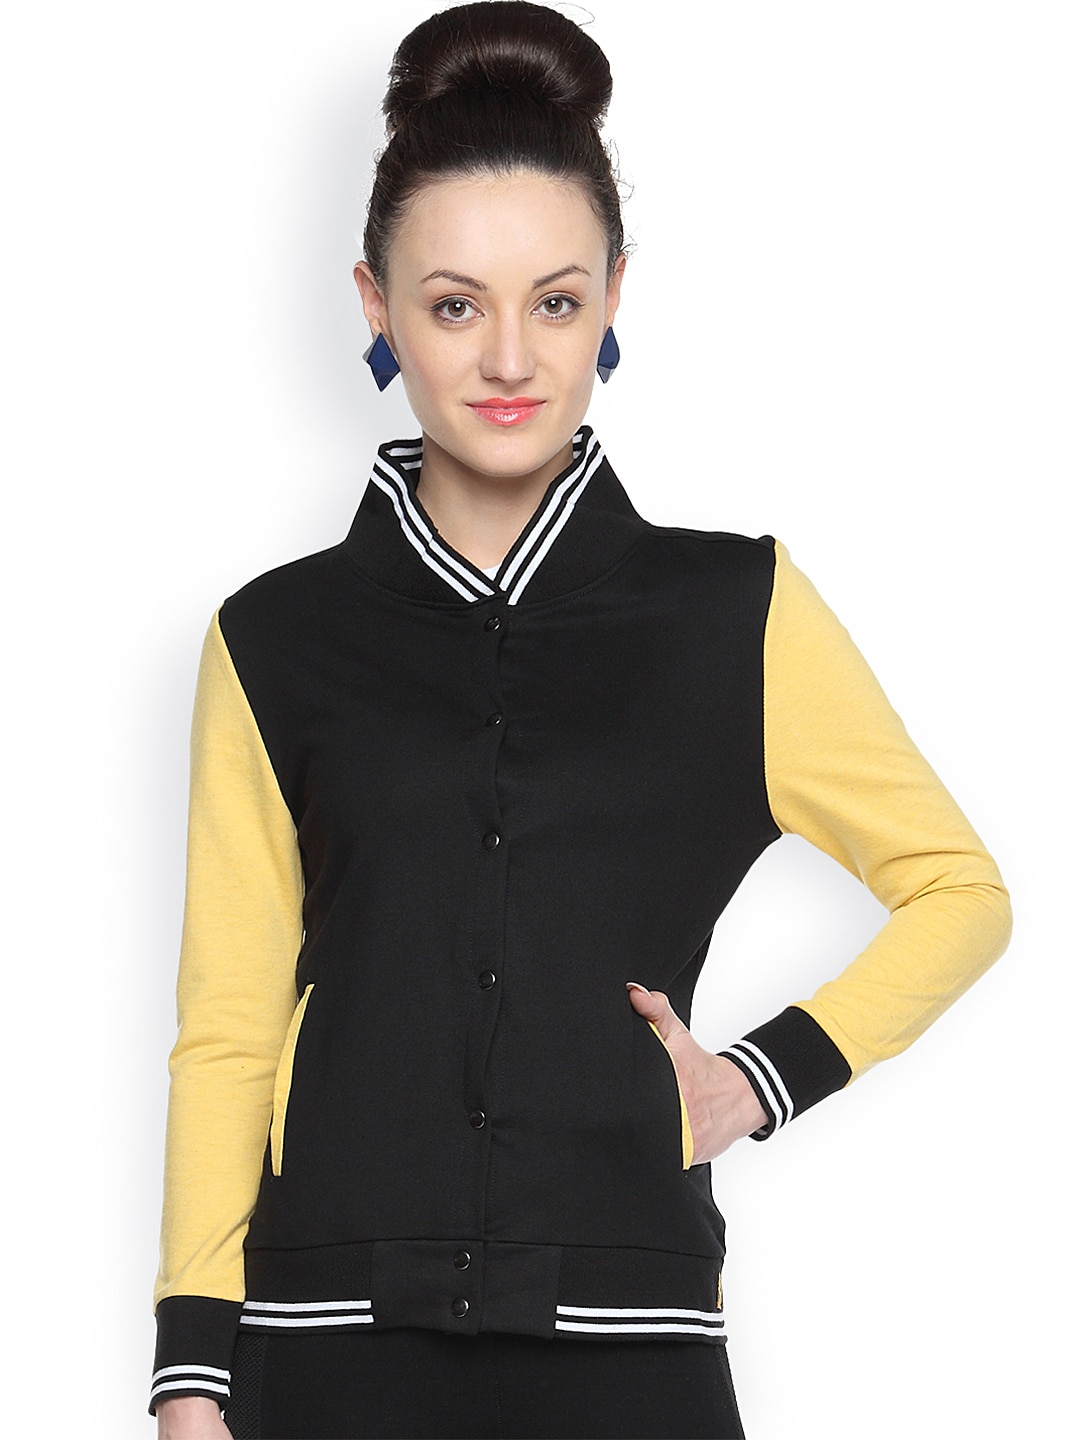 Campus Sutra Black & Yellow Thermal Jacket